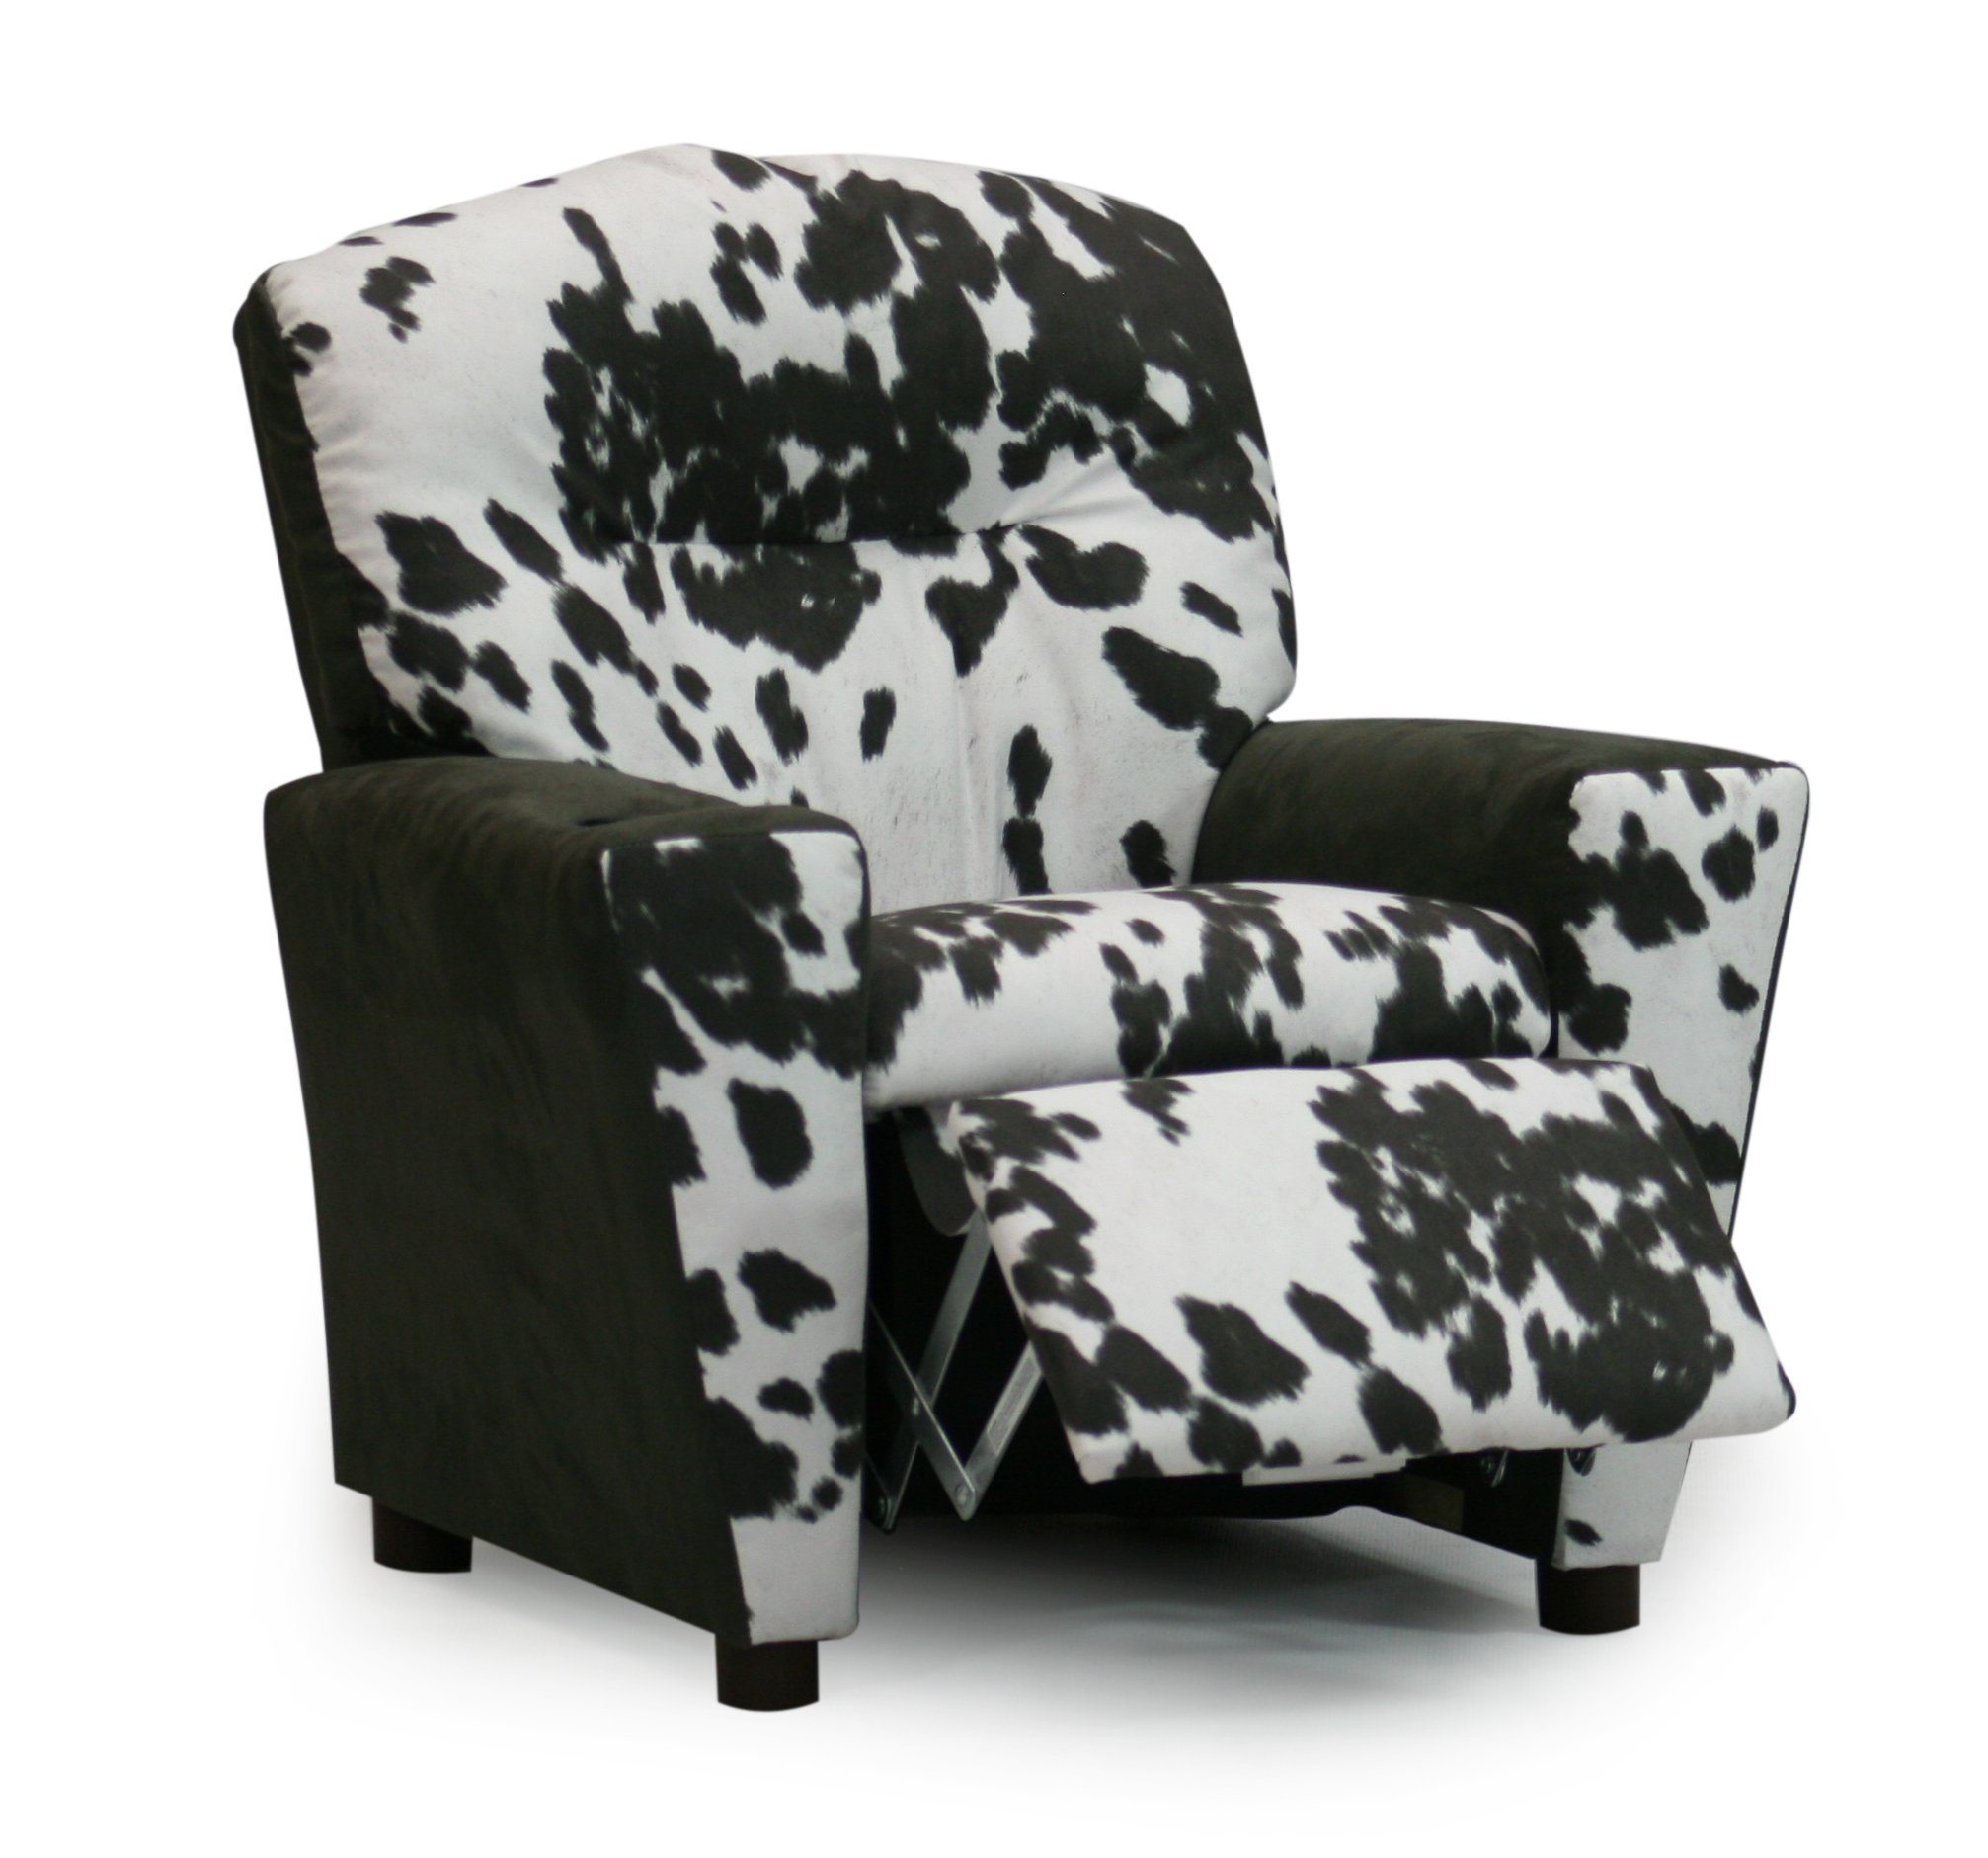 Kid's Recliner Upholstered Armchair with Cup Holder- Santas Favorite Children's Reclining Chair - Two Popular Faux Cowhide Fabric Choices (Charcoal Cowhide) by M Brands